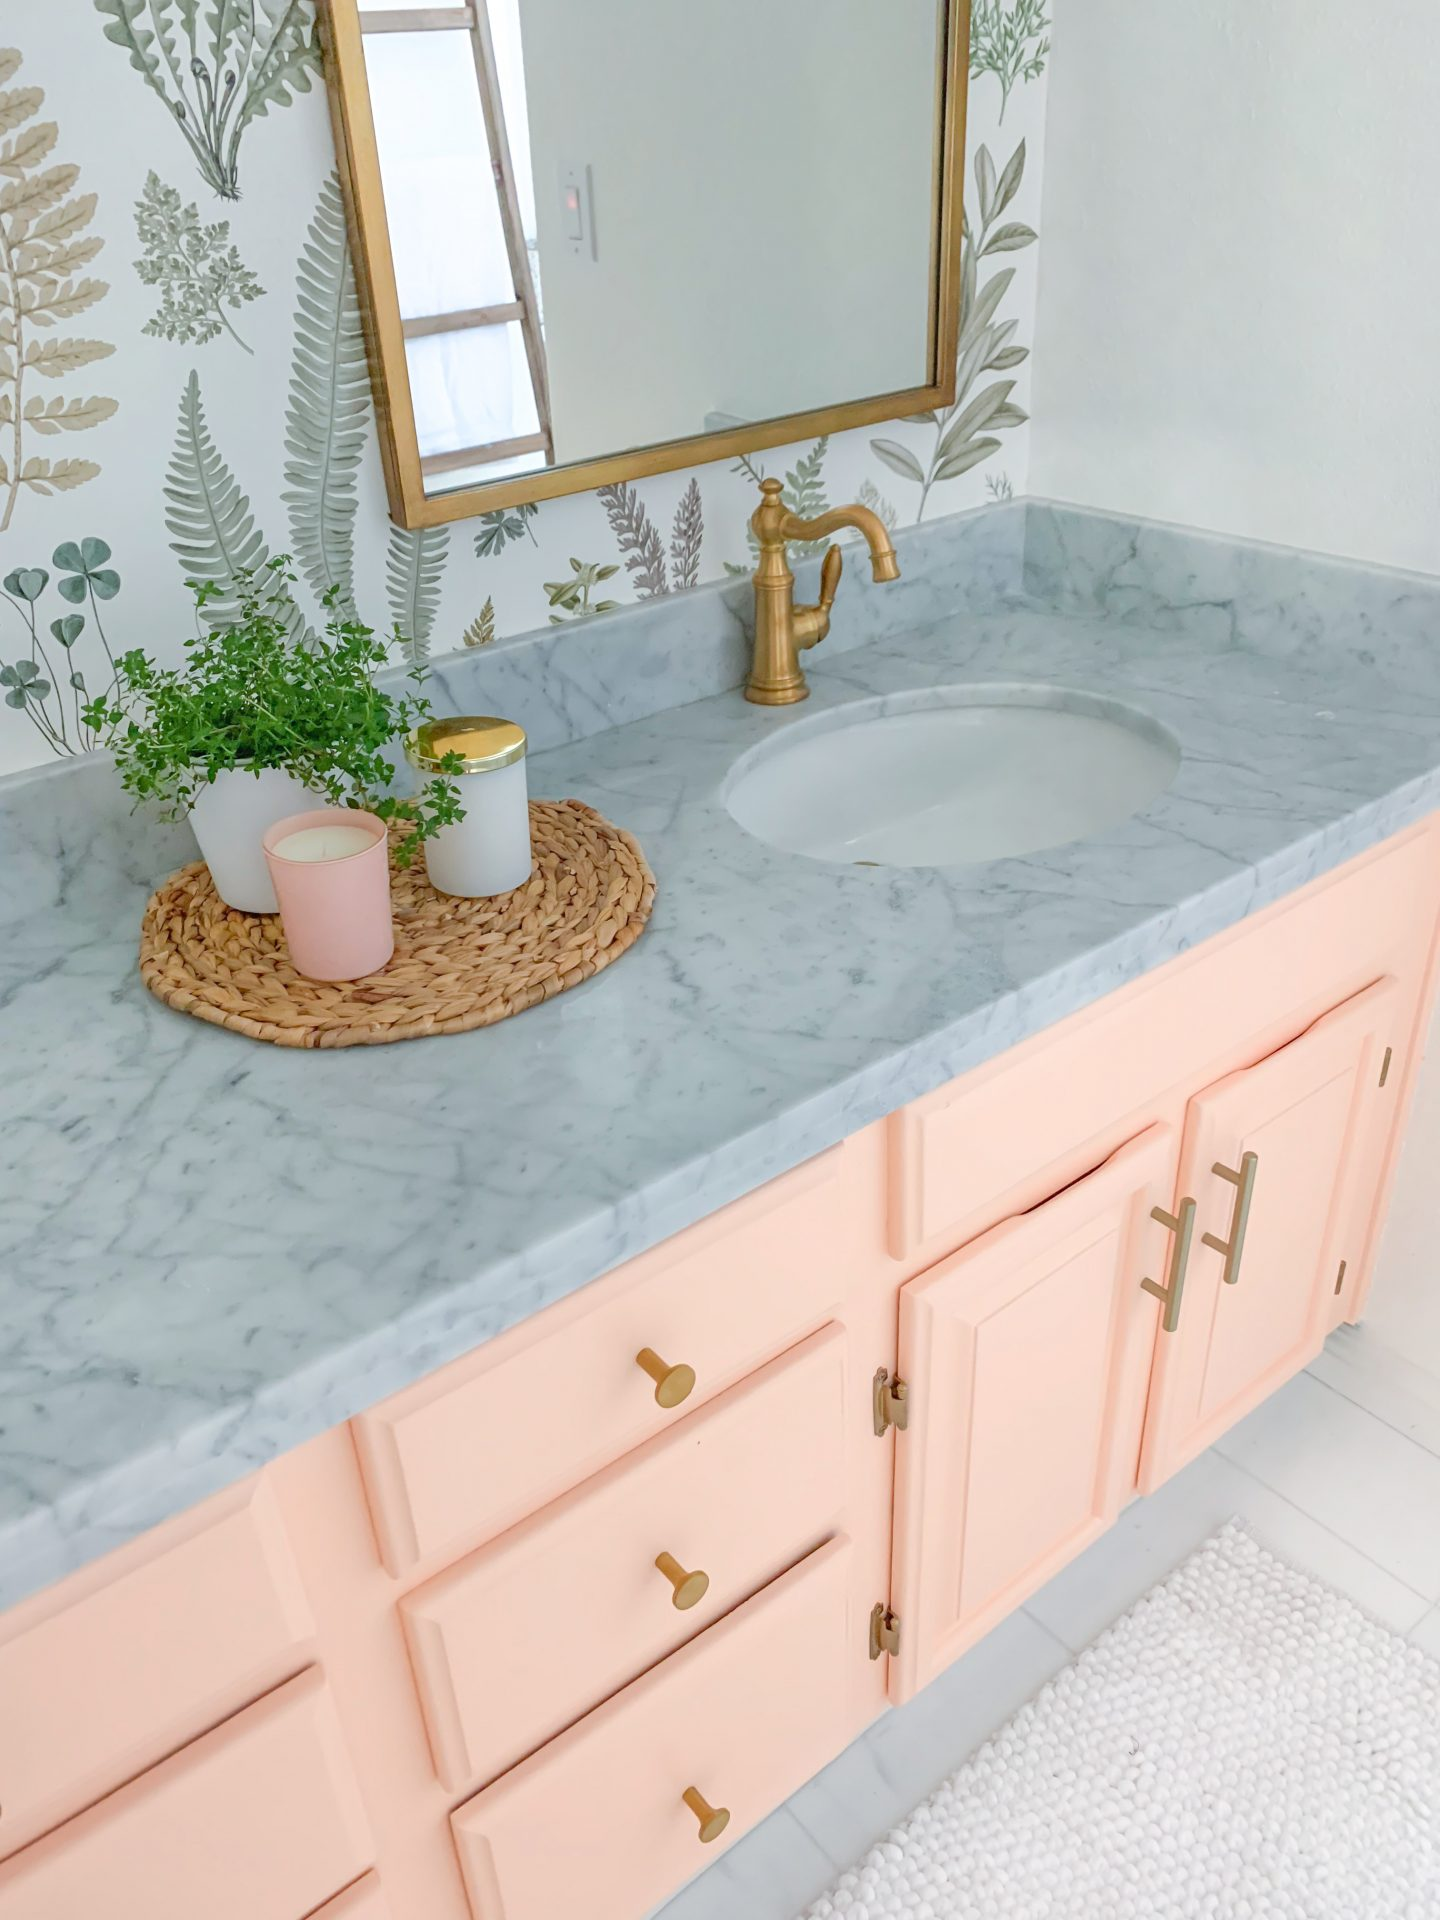 Wayfair floral bathroom decor featured by top US life and style blog, Lombard and Fifth